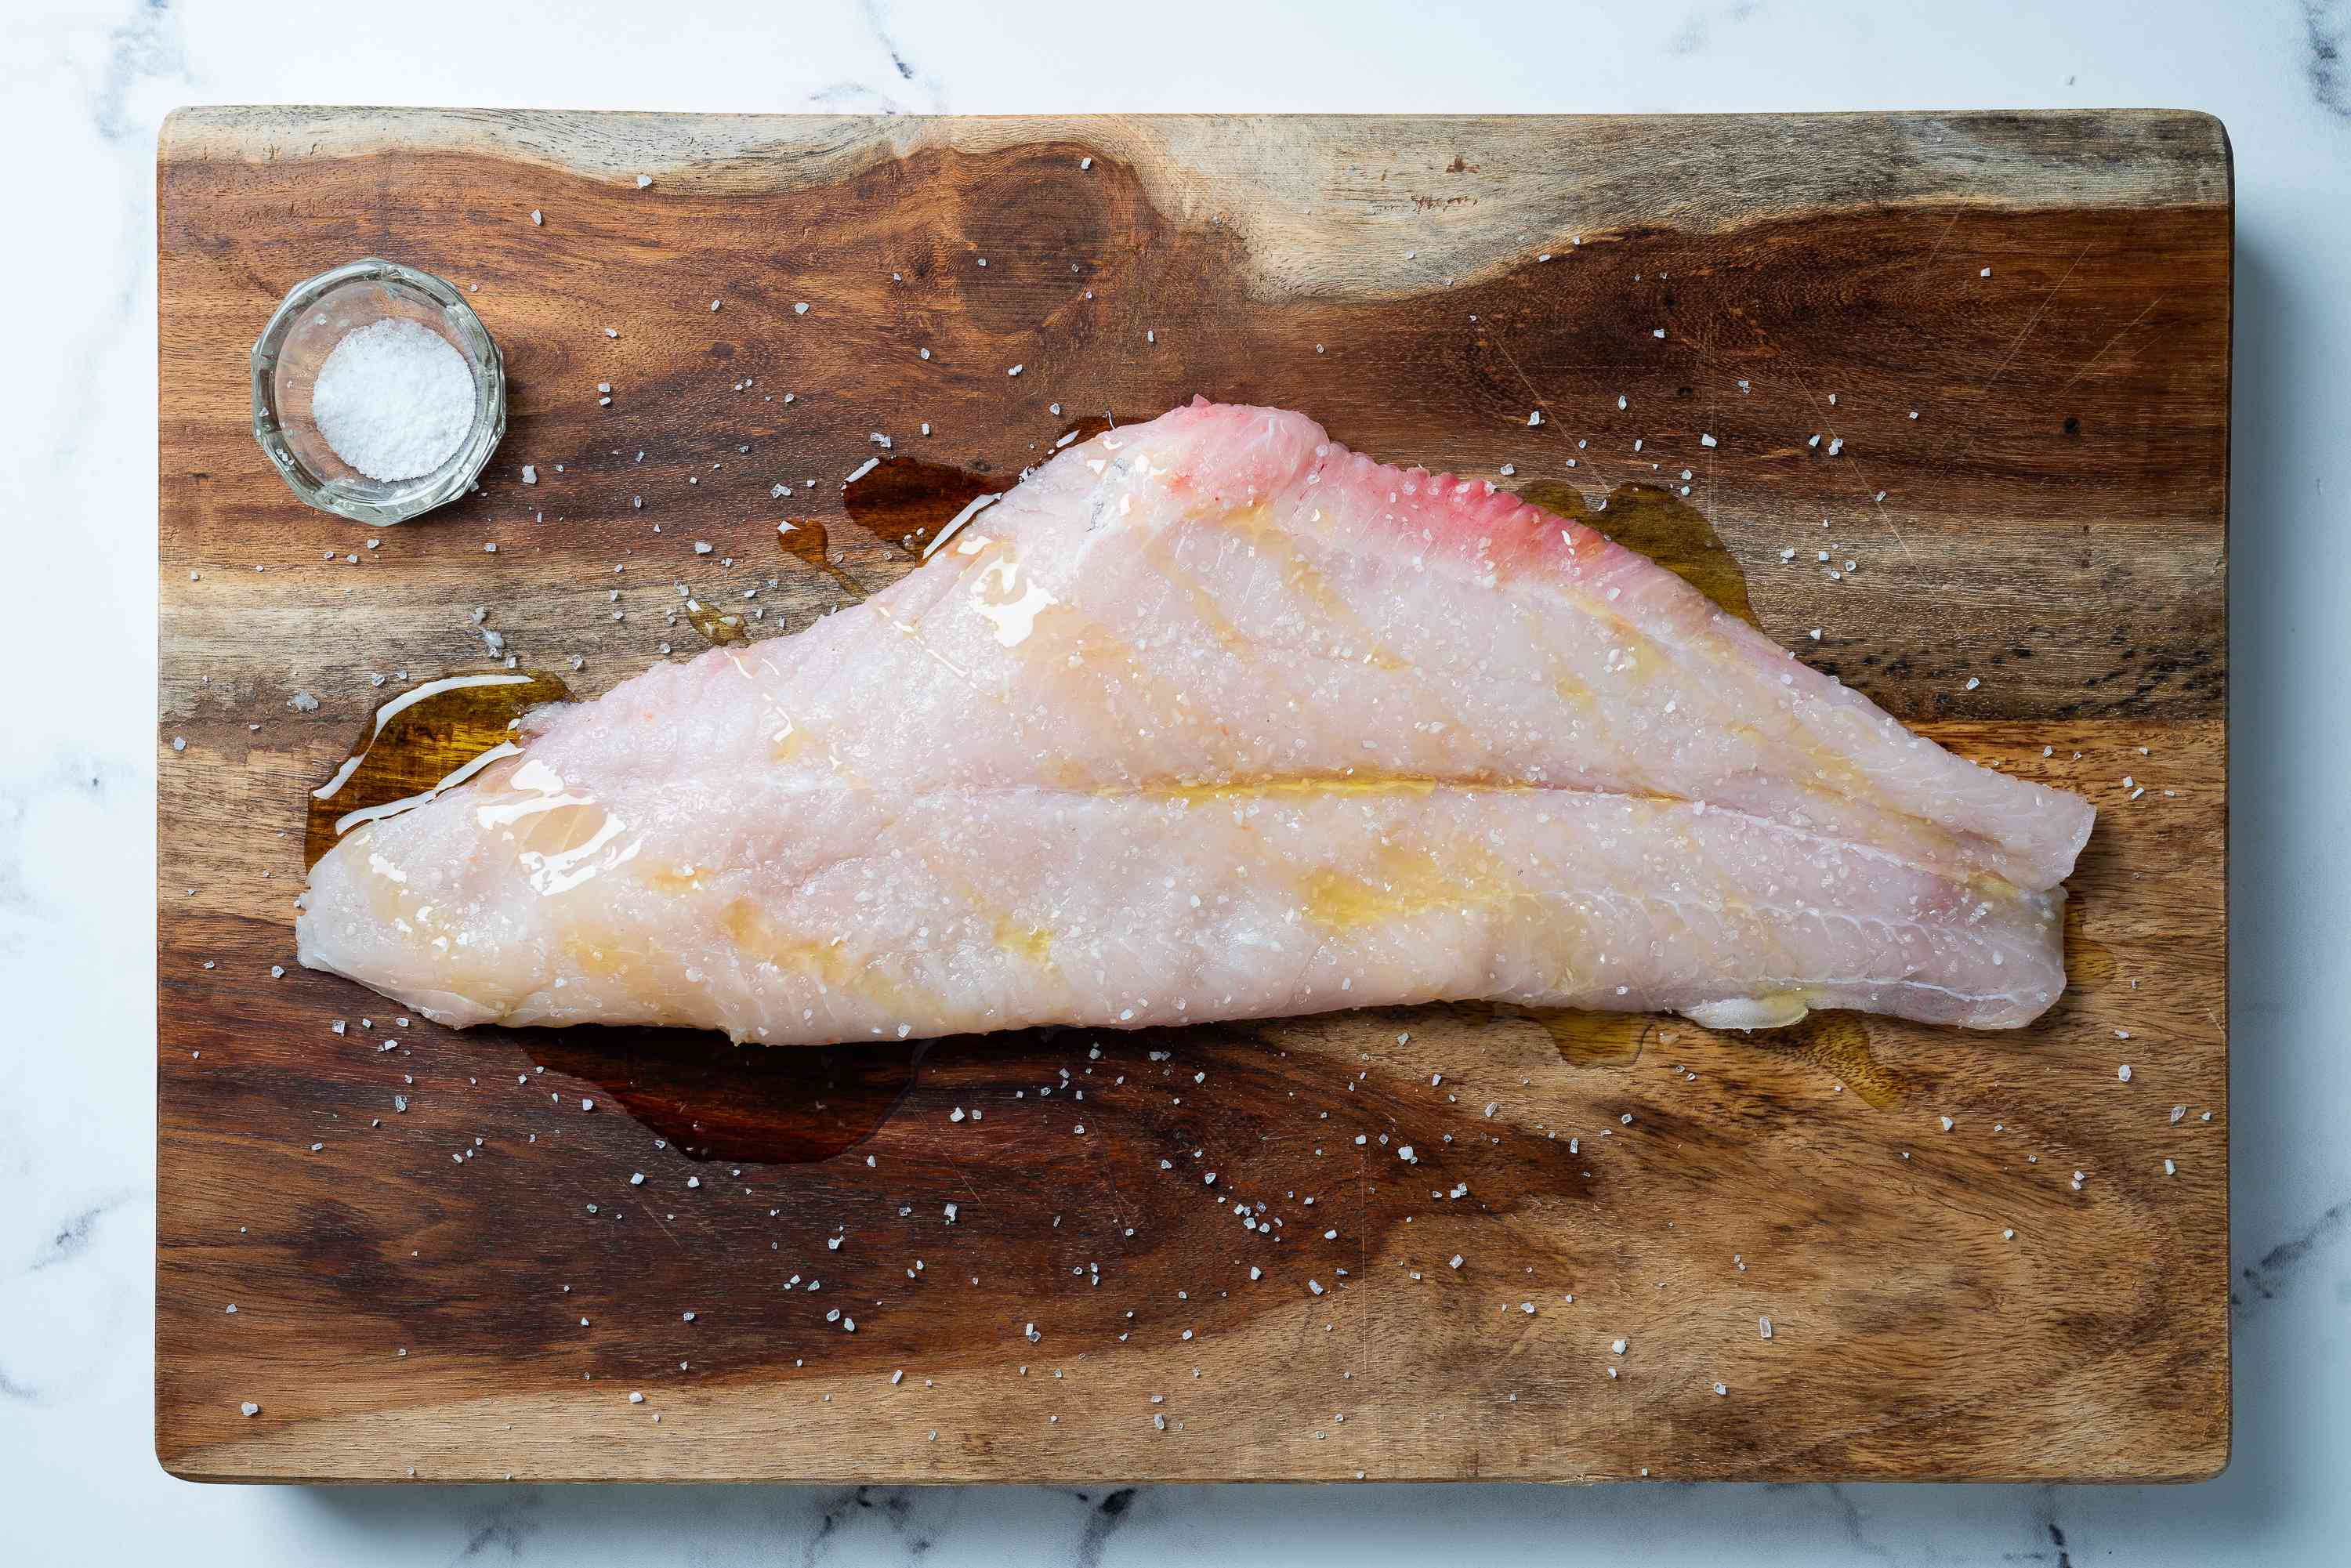 Catfish fillets drizzled with oil